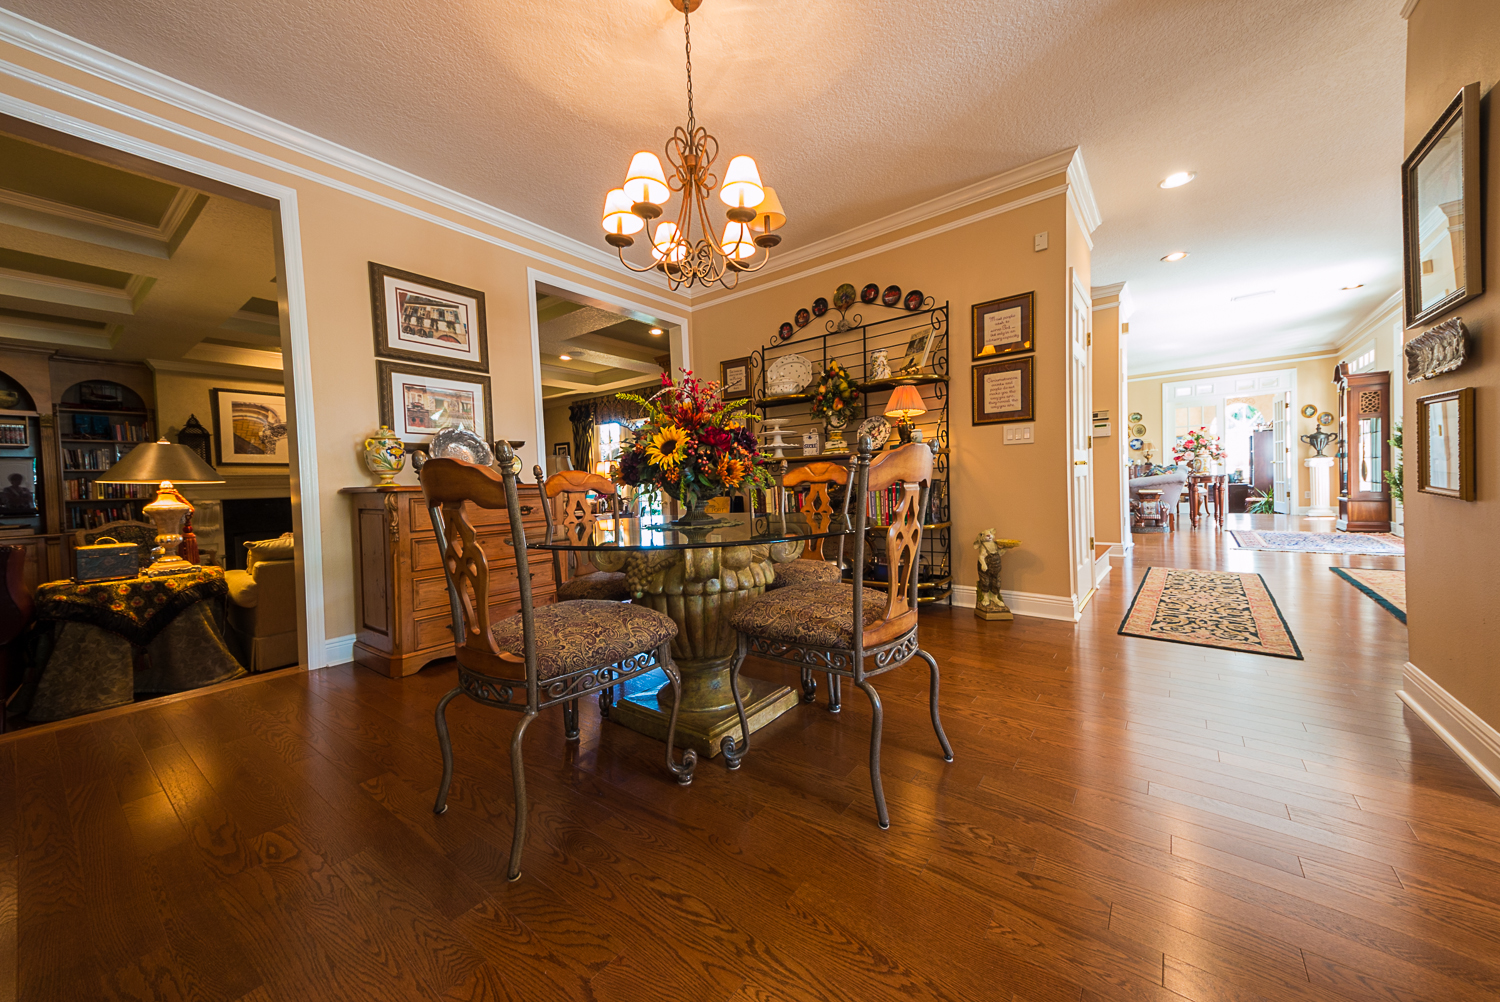 Mirage Sierra Oak Wood Flooring in Dining Room